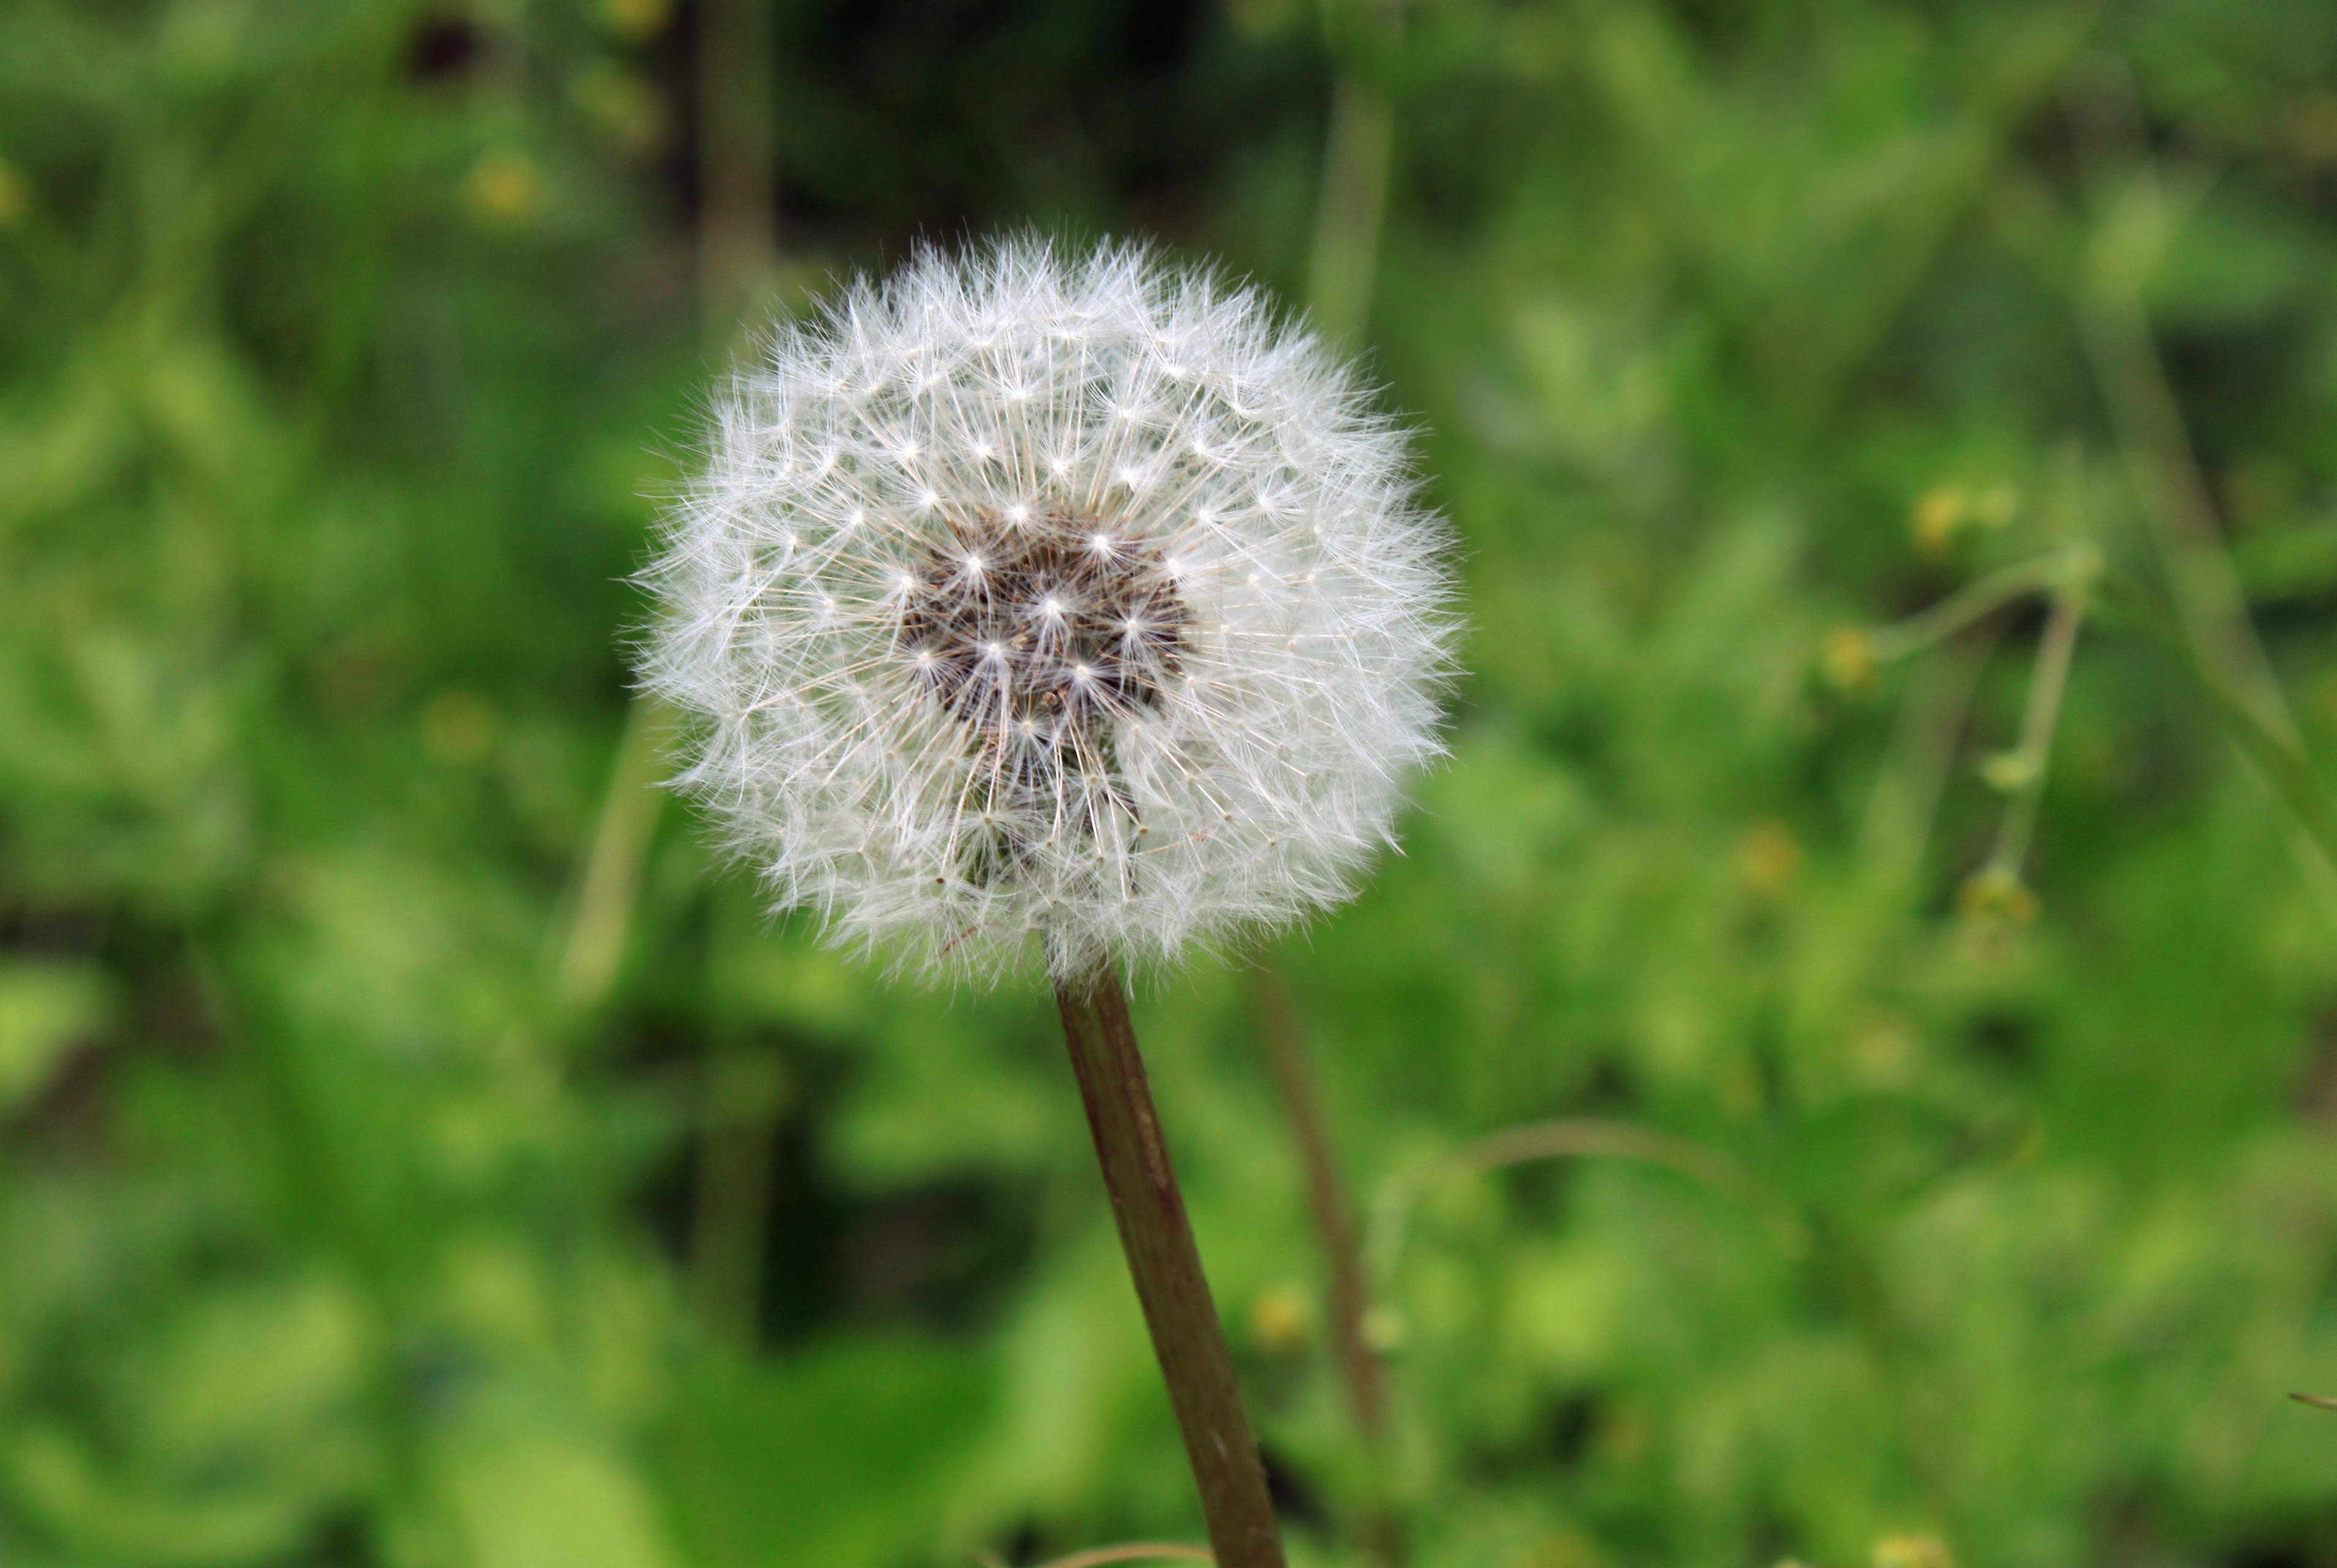 Free stock photo of plant, flower, macro, dandelion